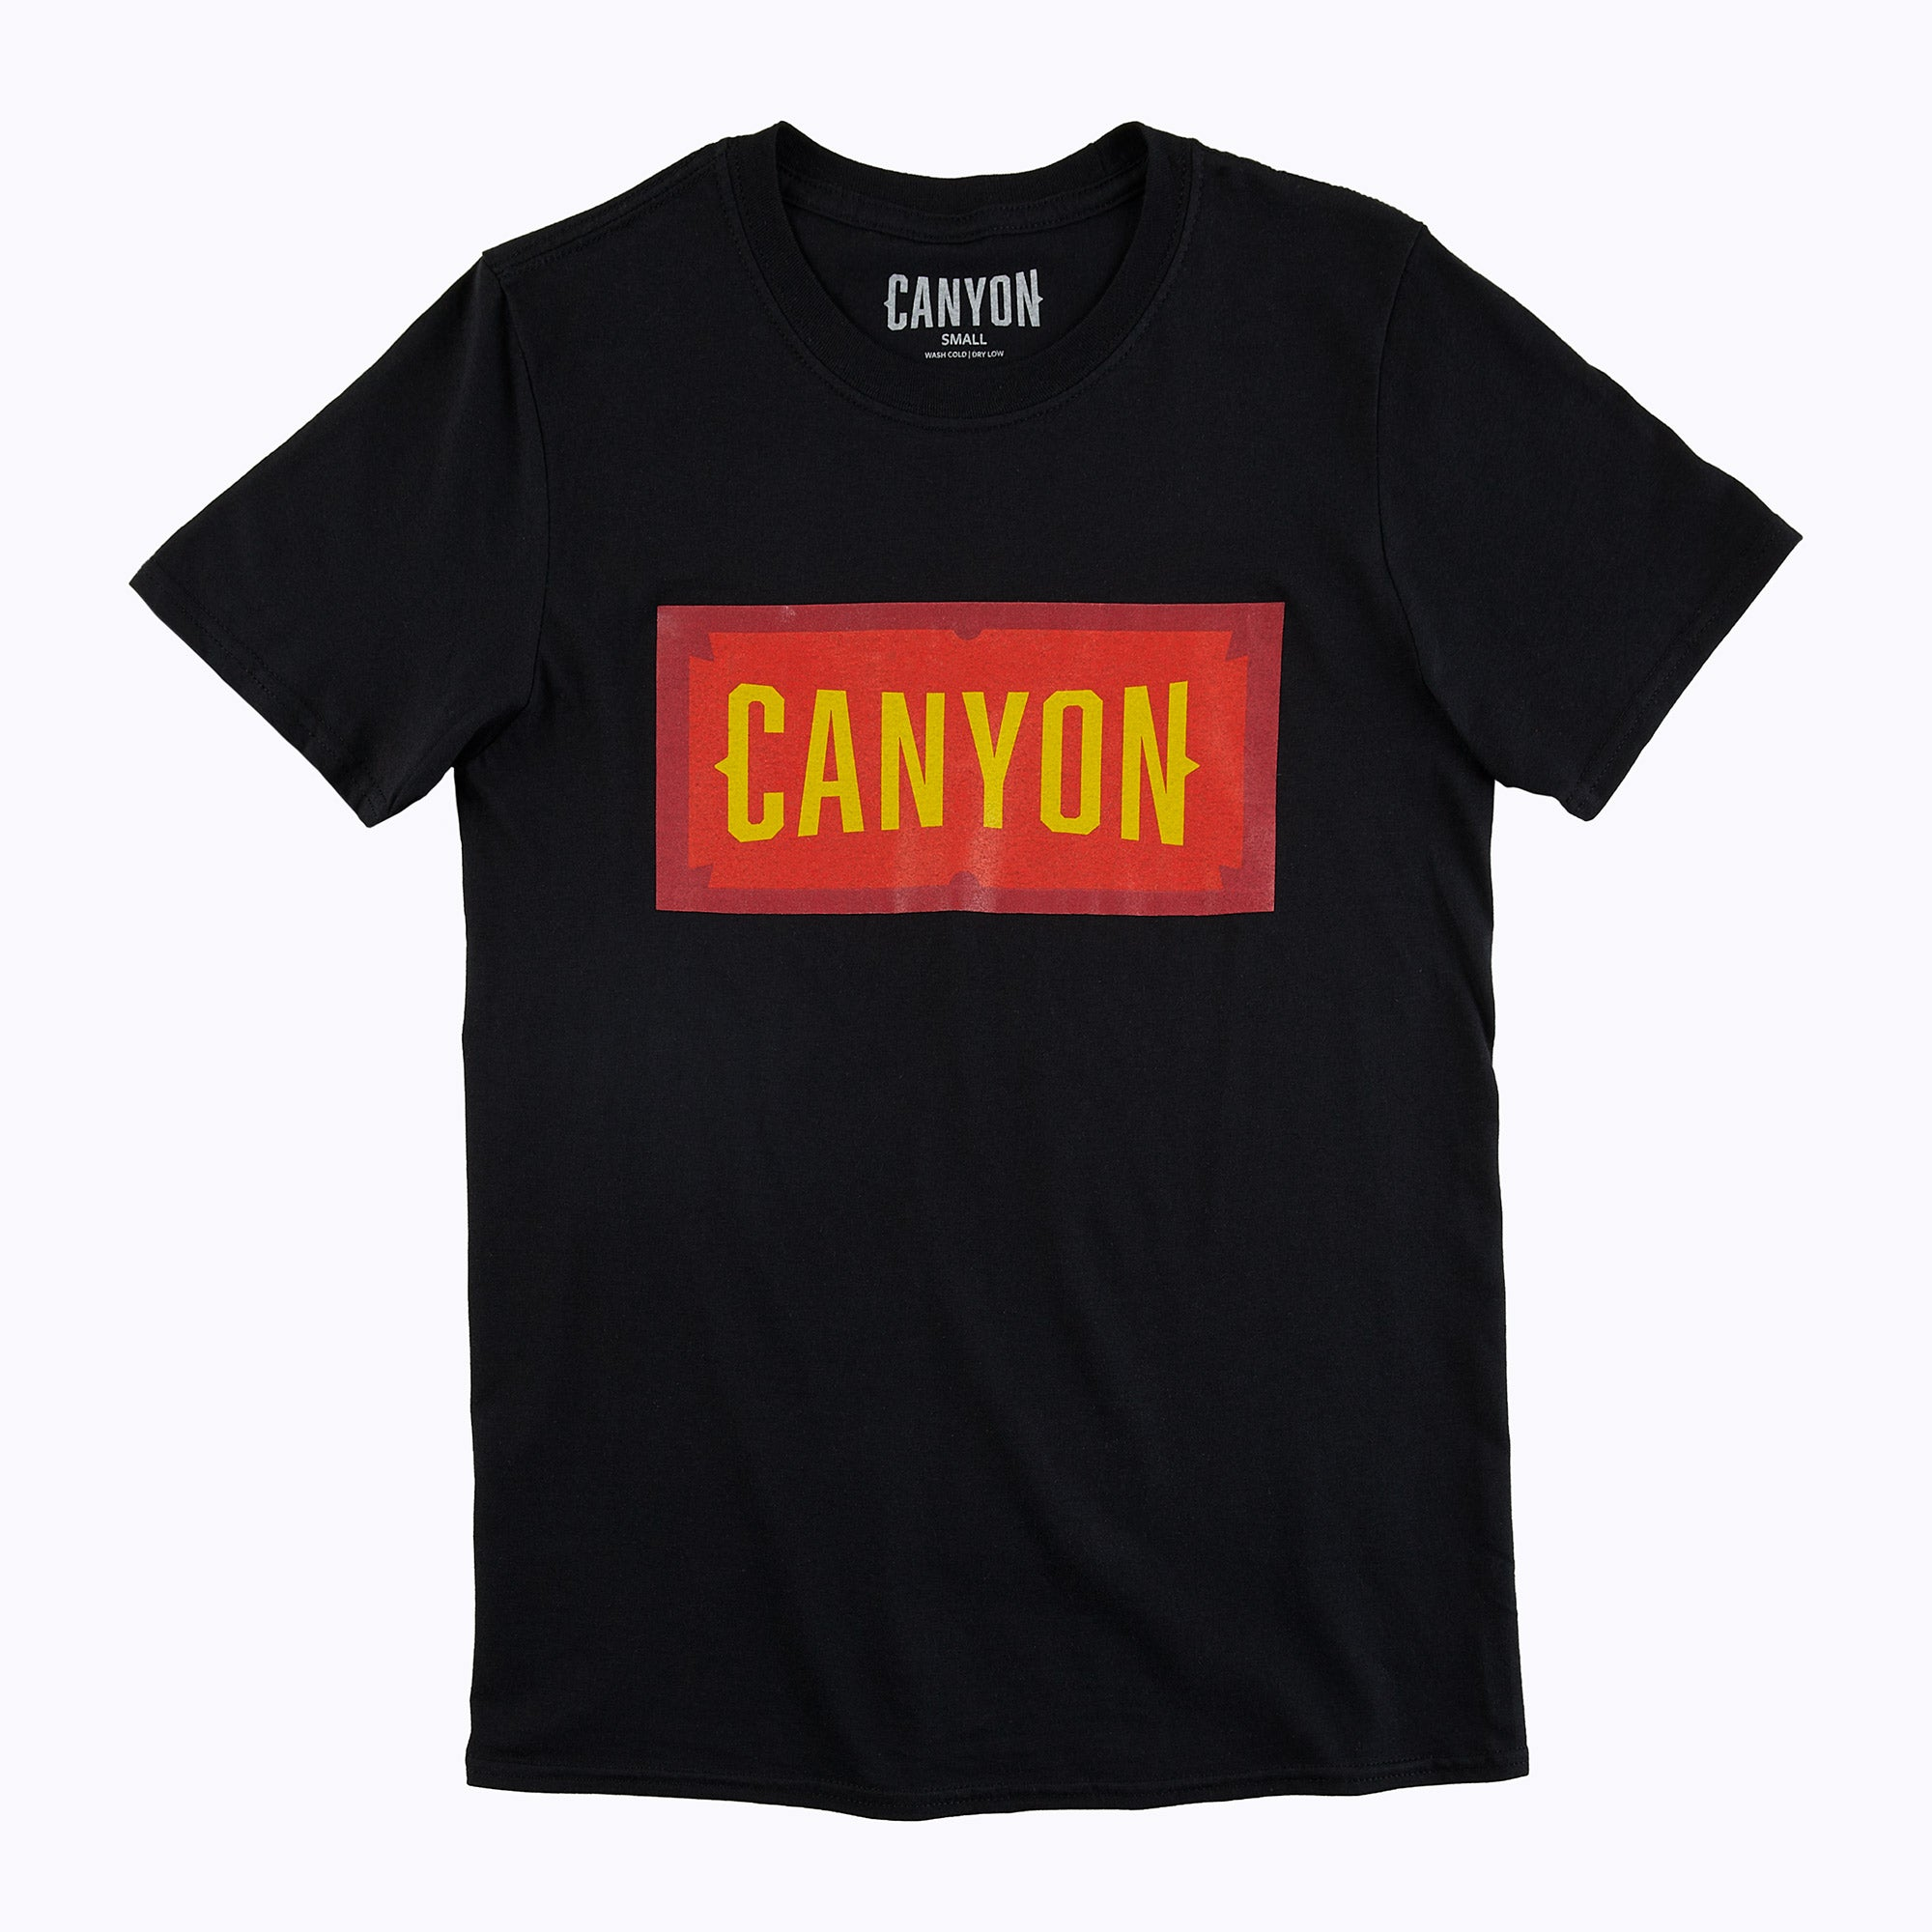 Boxed Tee Shirt - Small by Canyon Socks